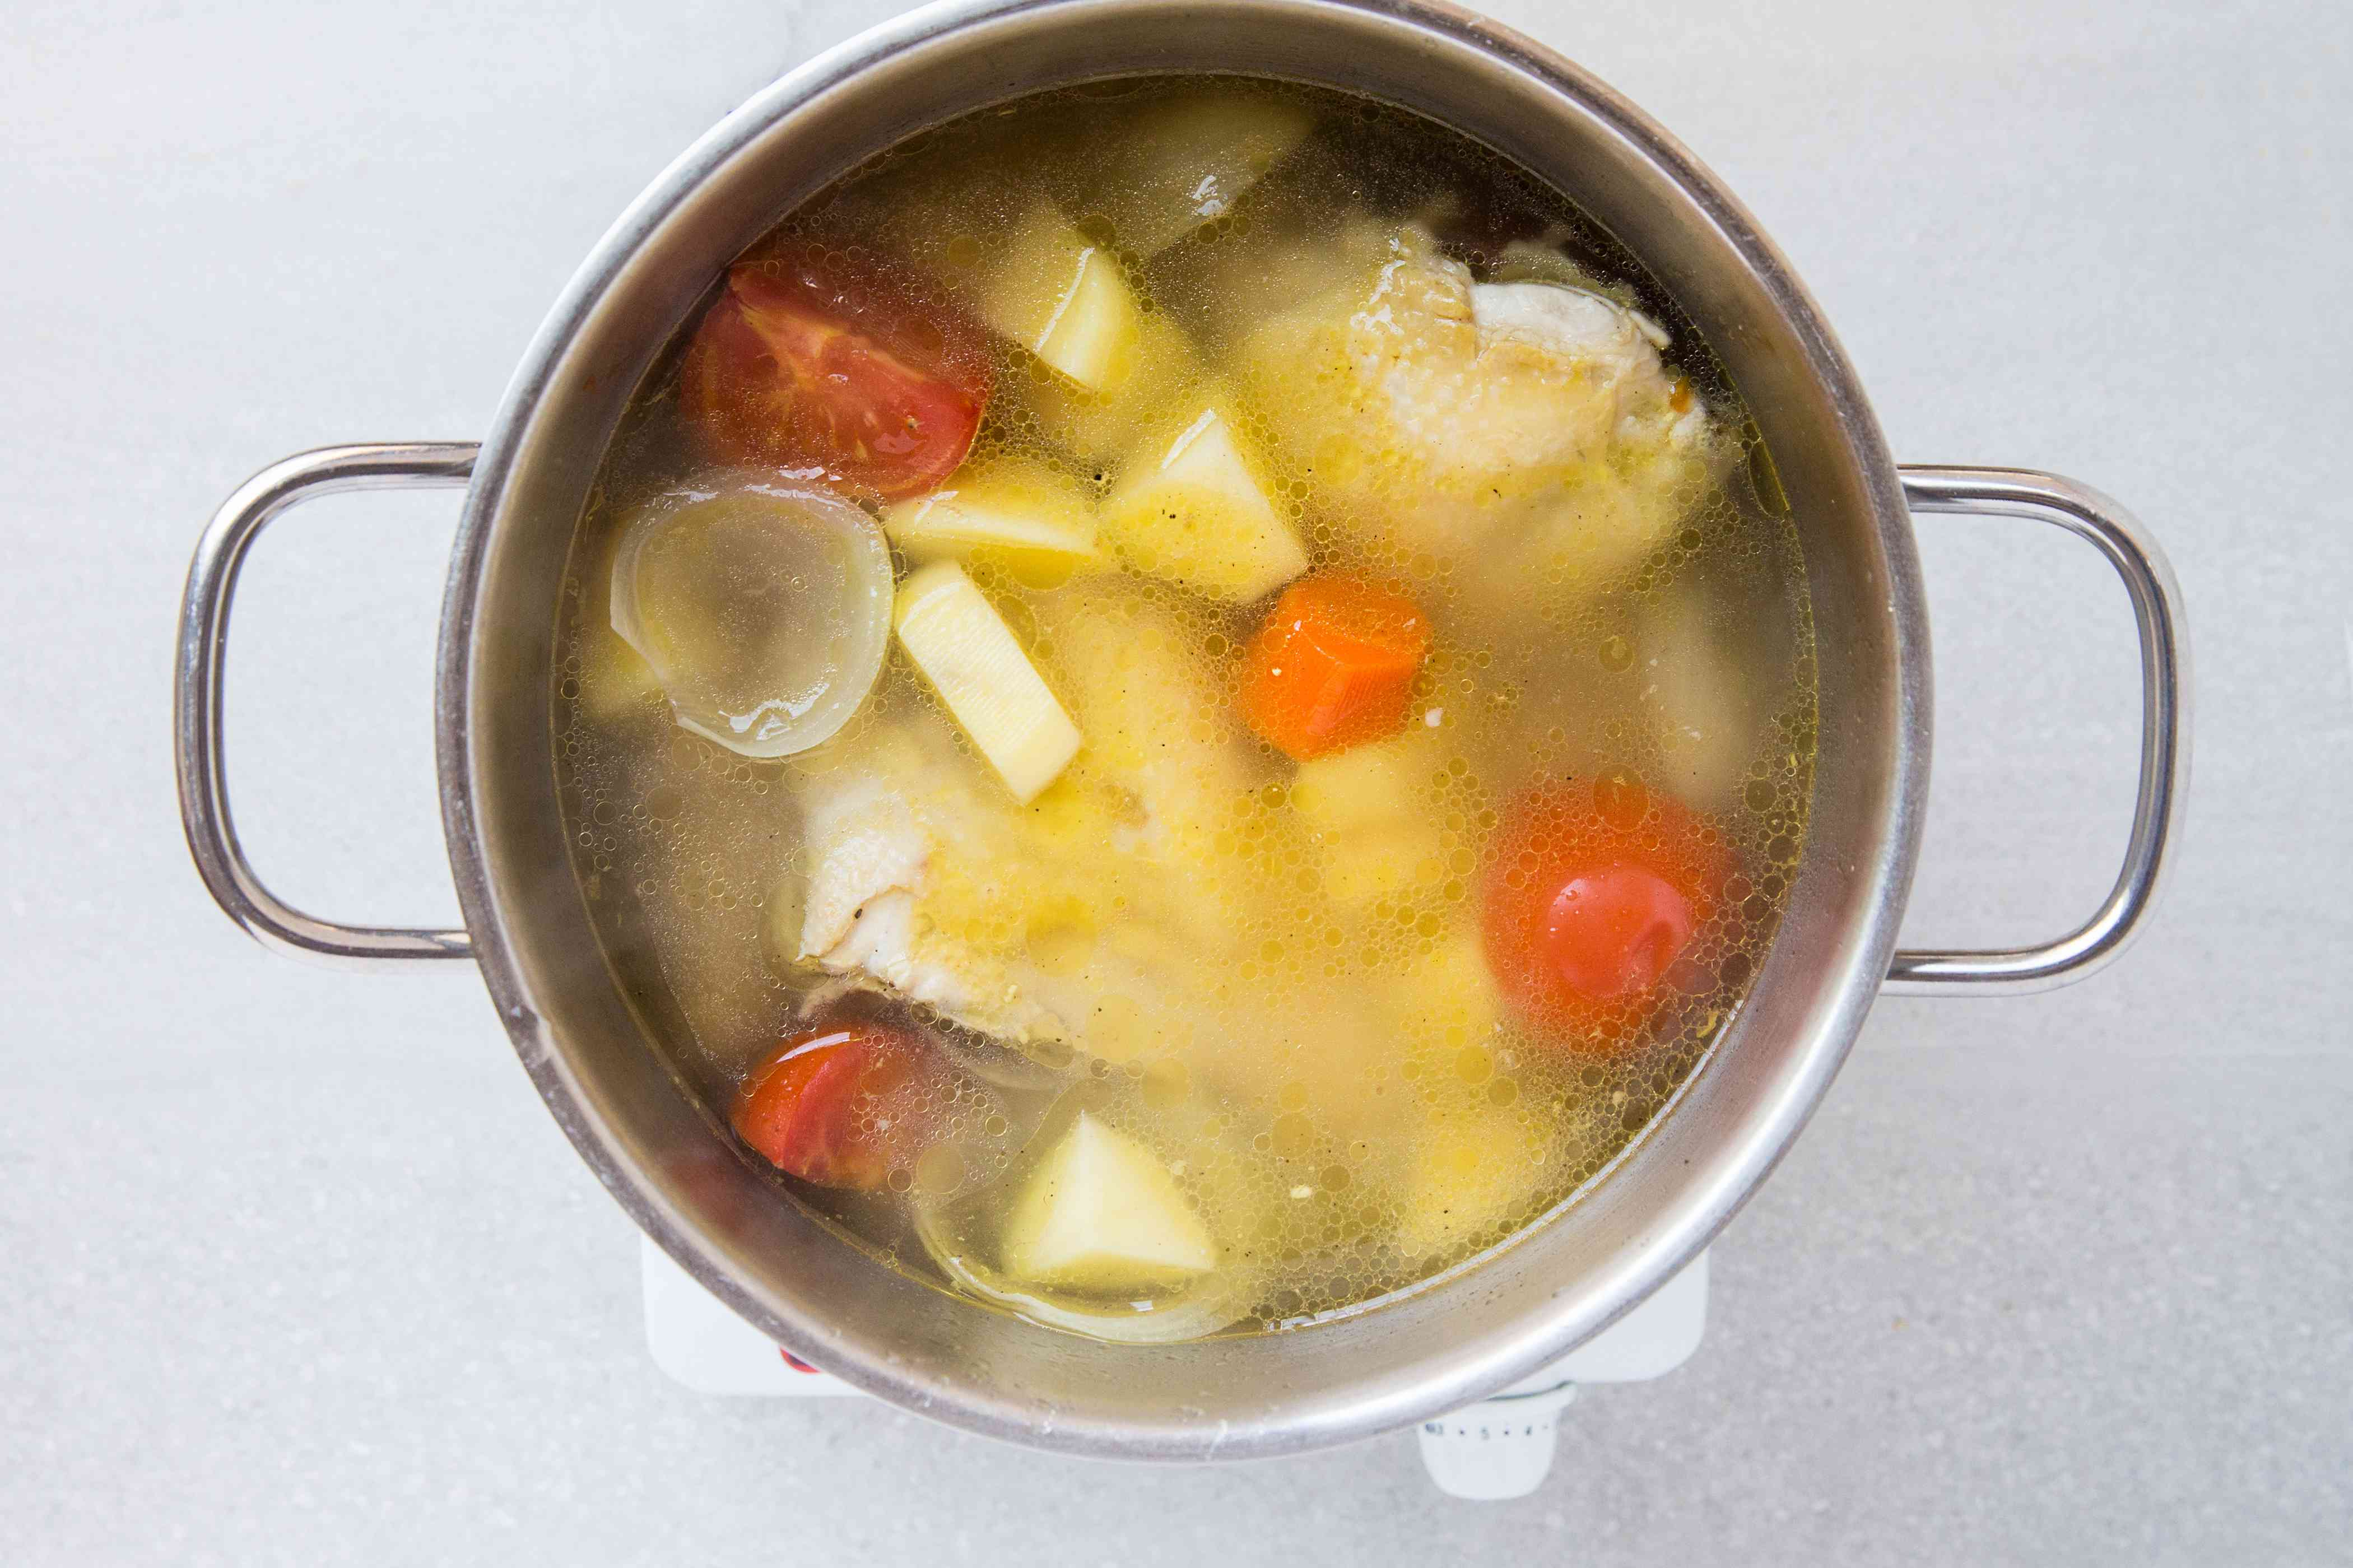 Potatoes are added to the pot with the chicken and vegetables